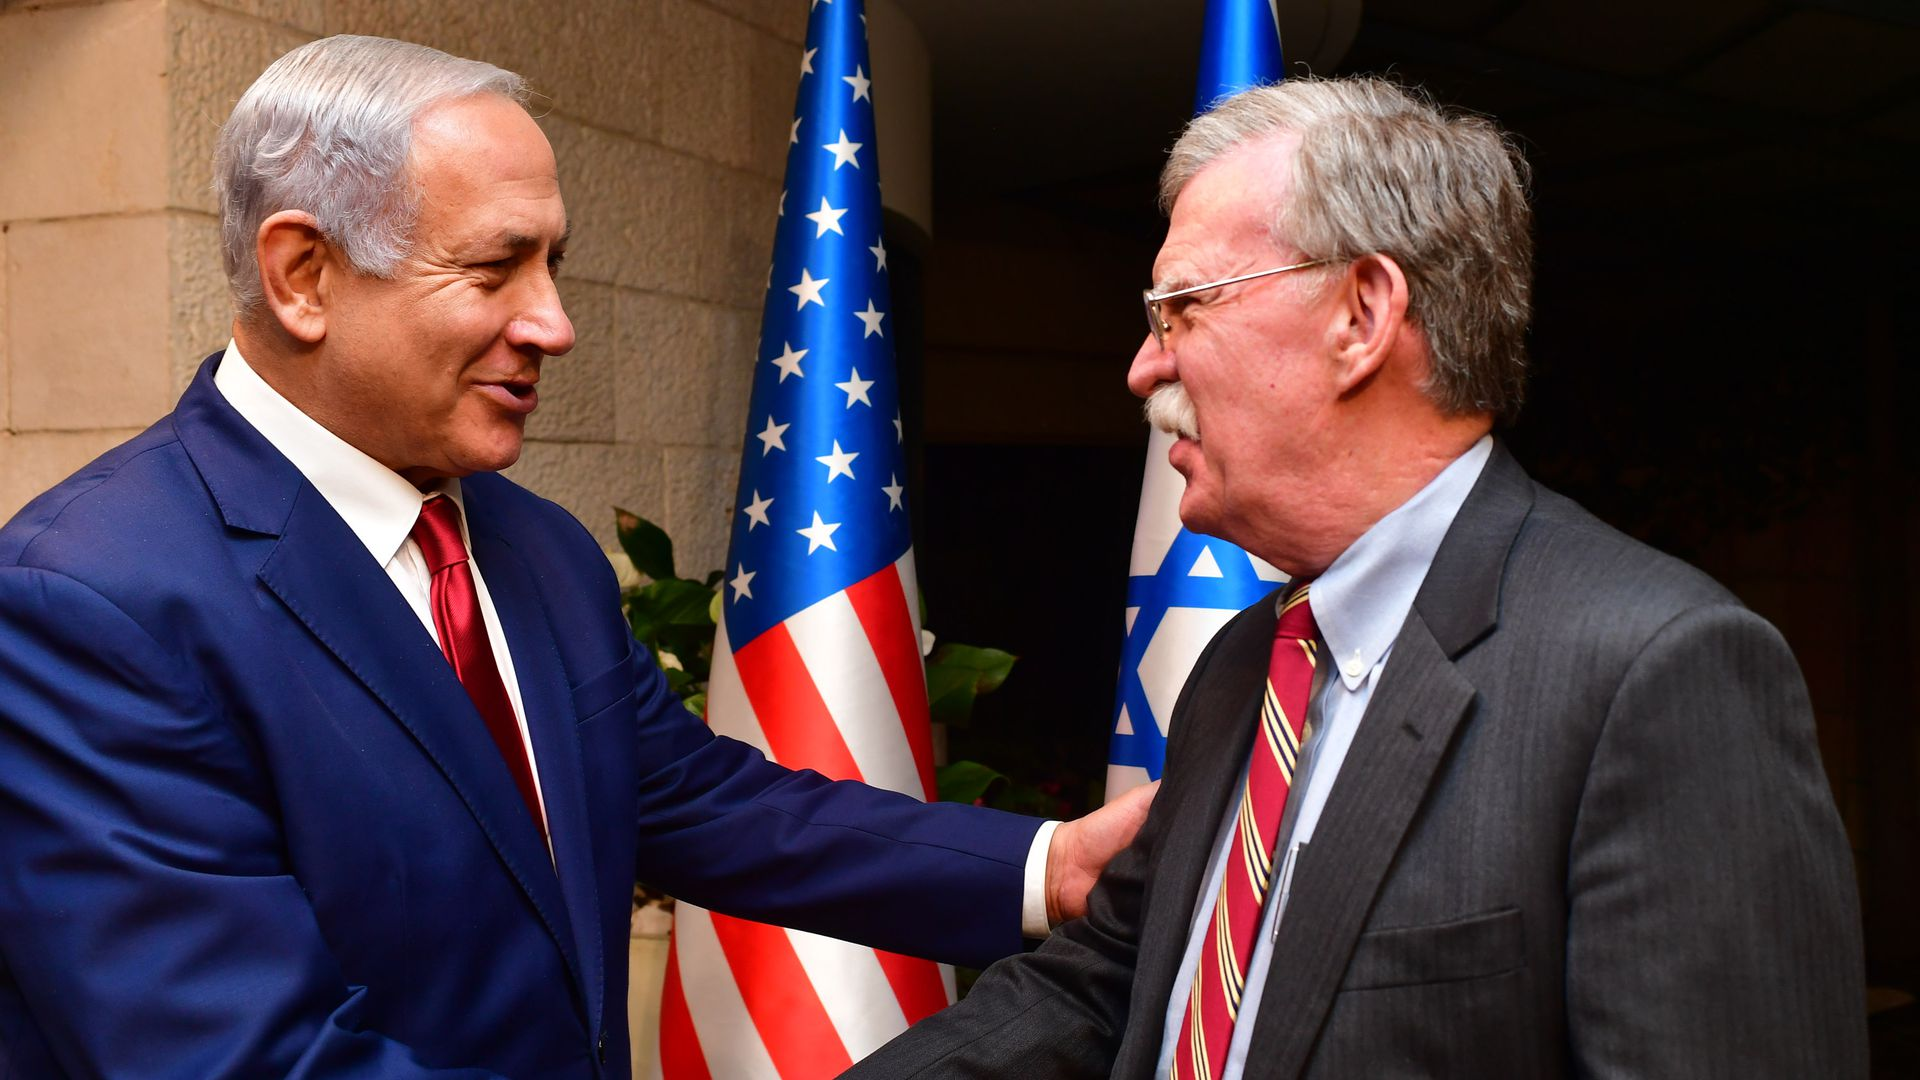 John Bolton shaking hands with Netanyahu